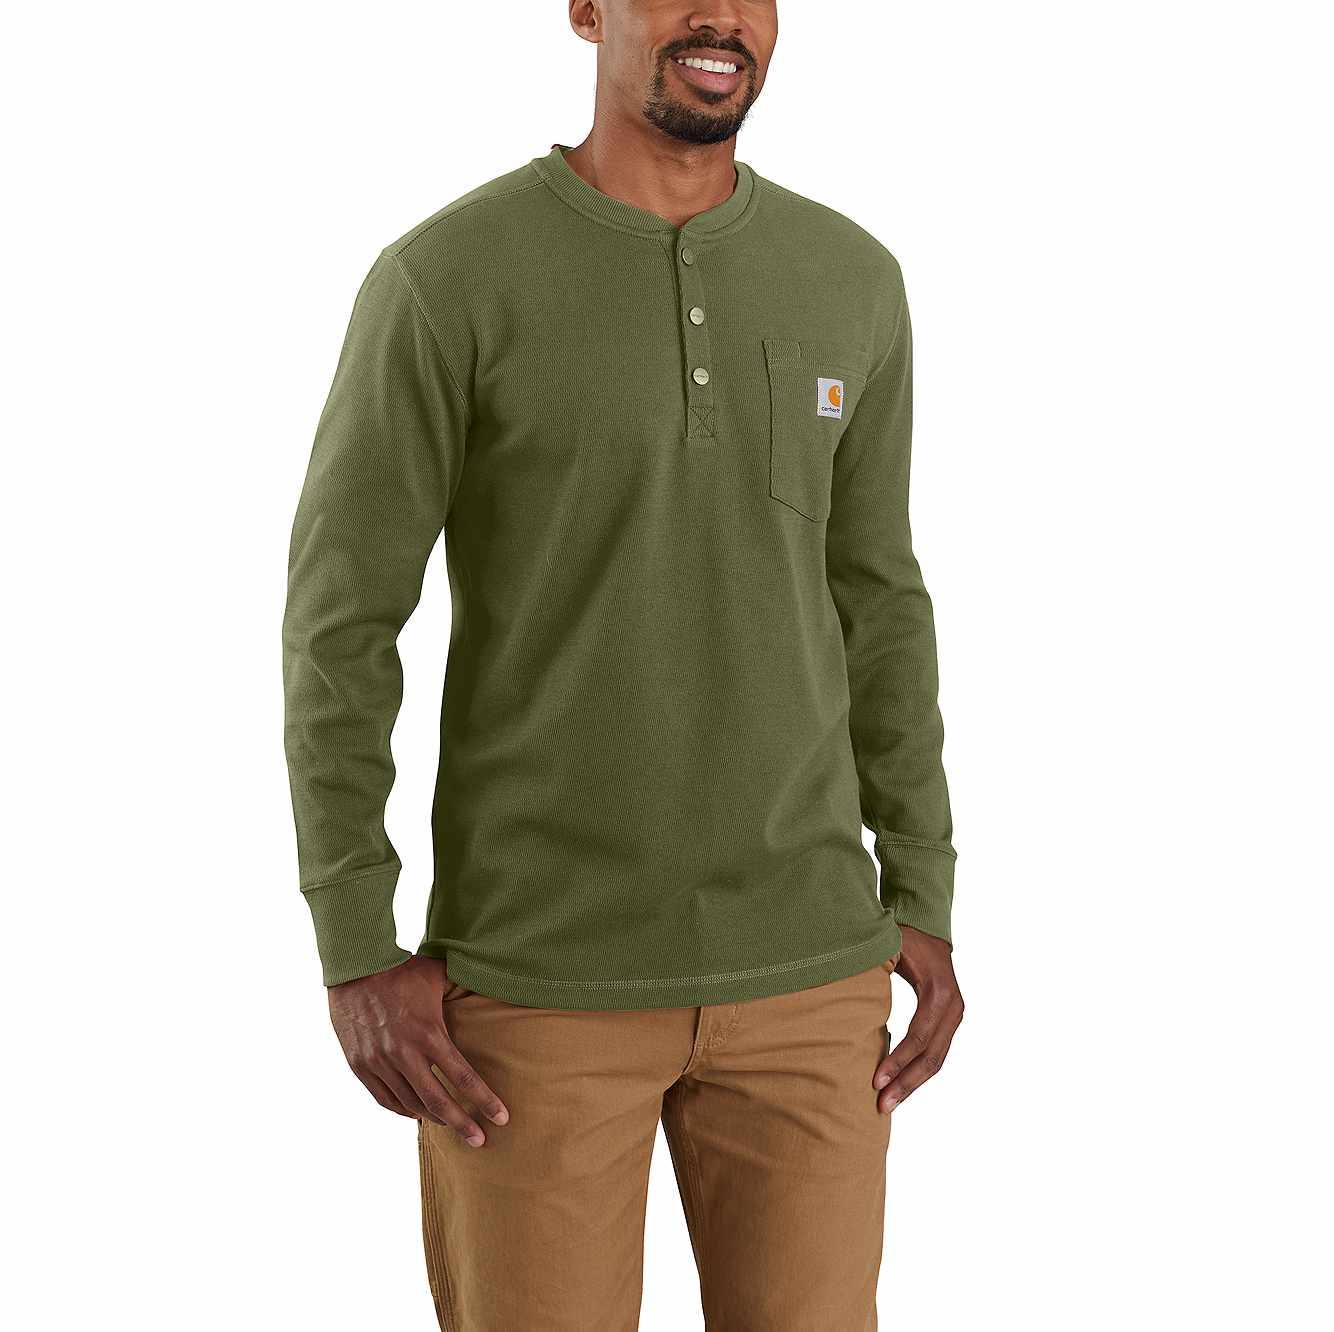 Picture of RELAXED FIT HEAVYWEIGHT LONG-SLEEVE HENLEY POCKET THERMAL SHIRT